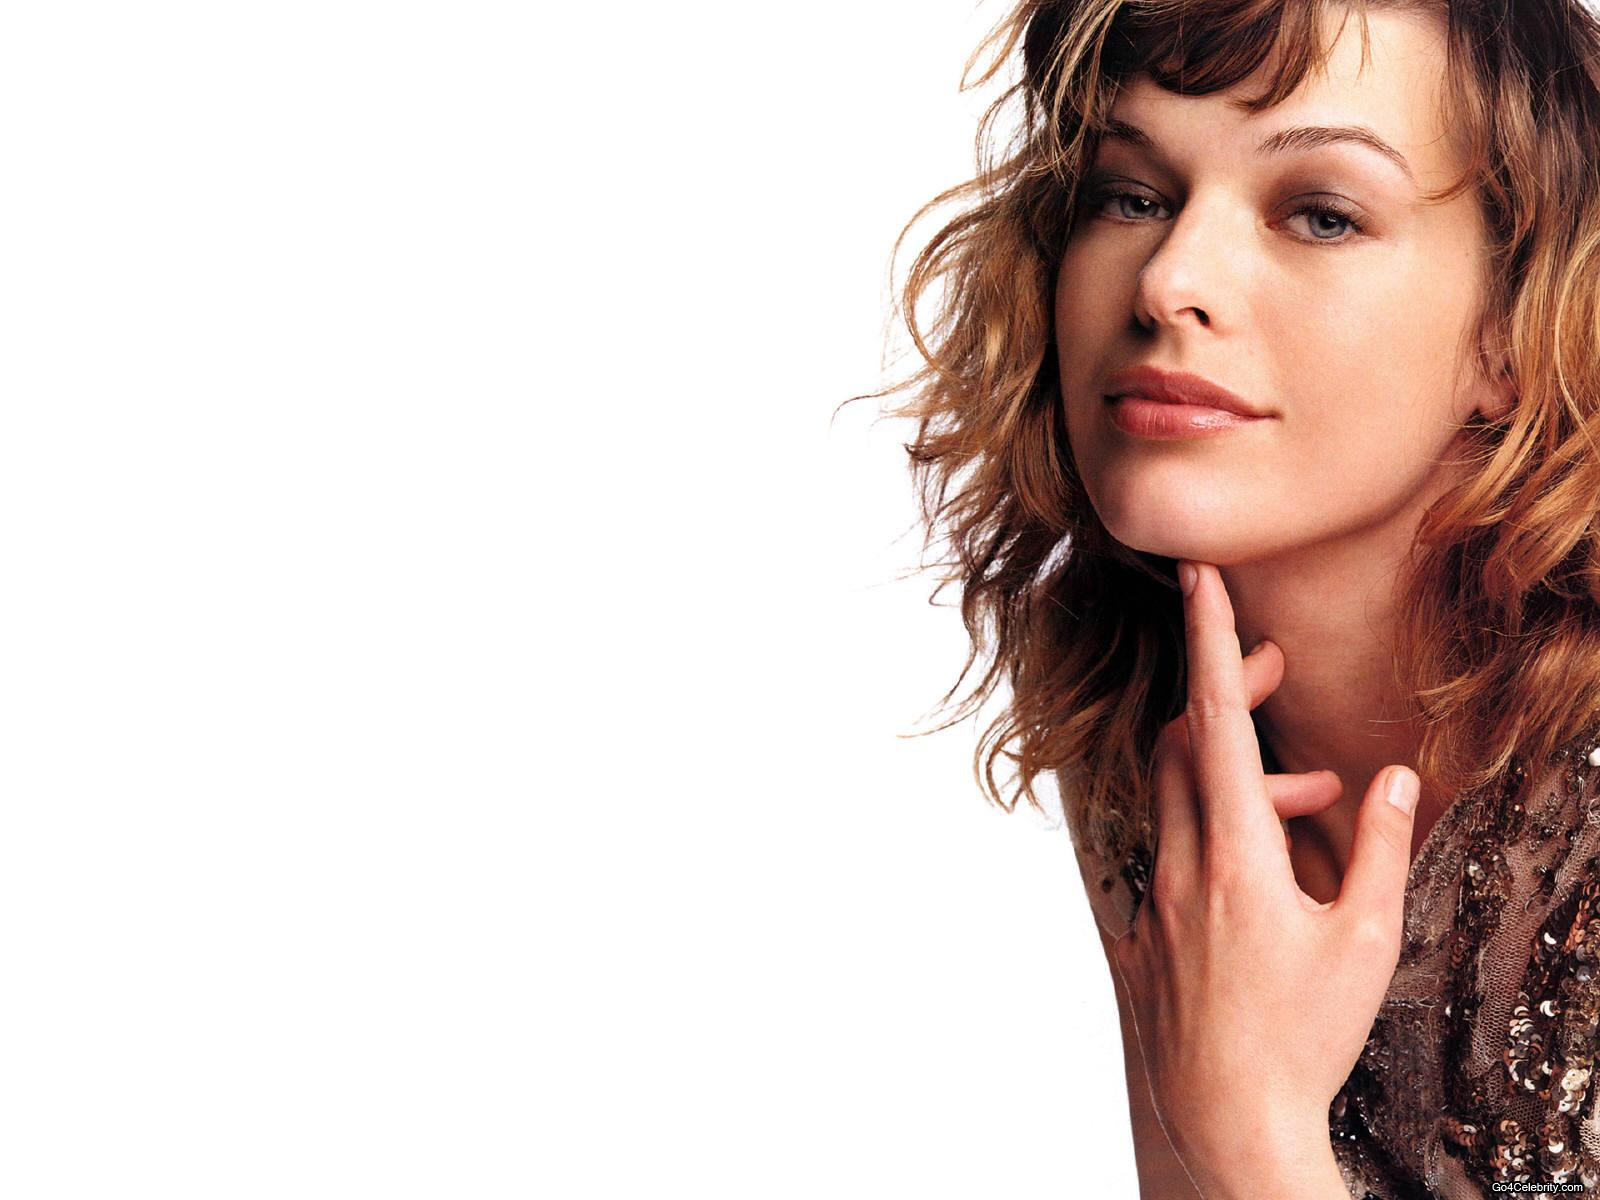 Milla Jovovich Resident Evil Wallpapers Group (55+)